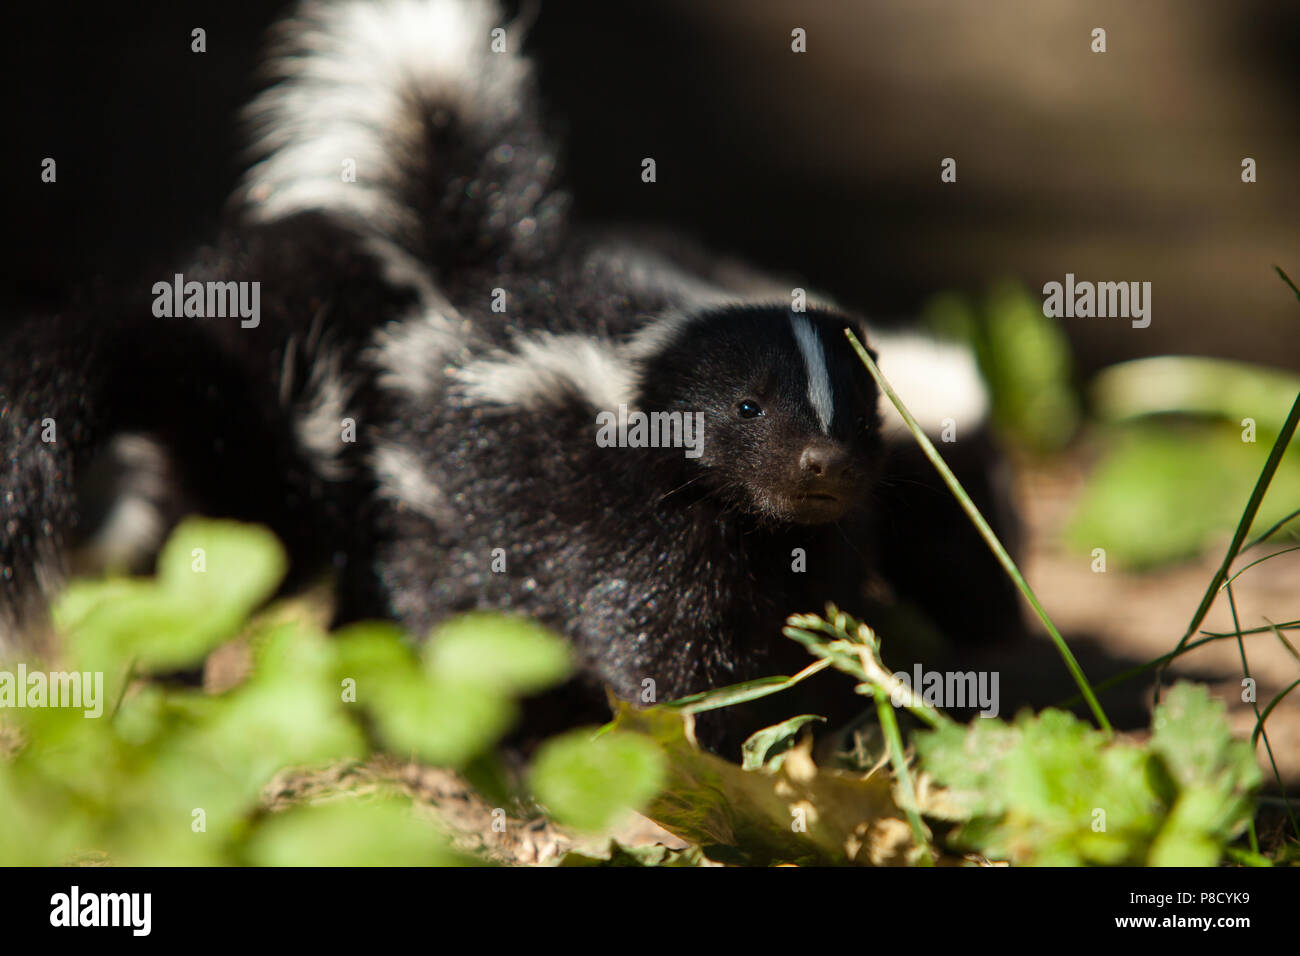 Skunk In Backyard skunk kits in the backyard stock photo: 211726797 - alamy